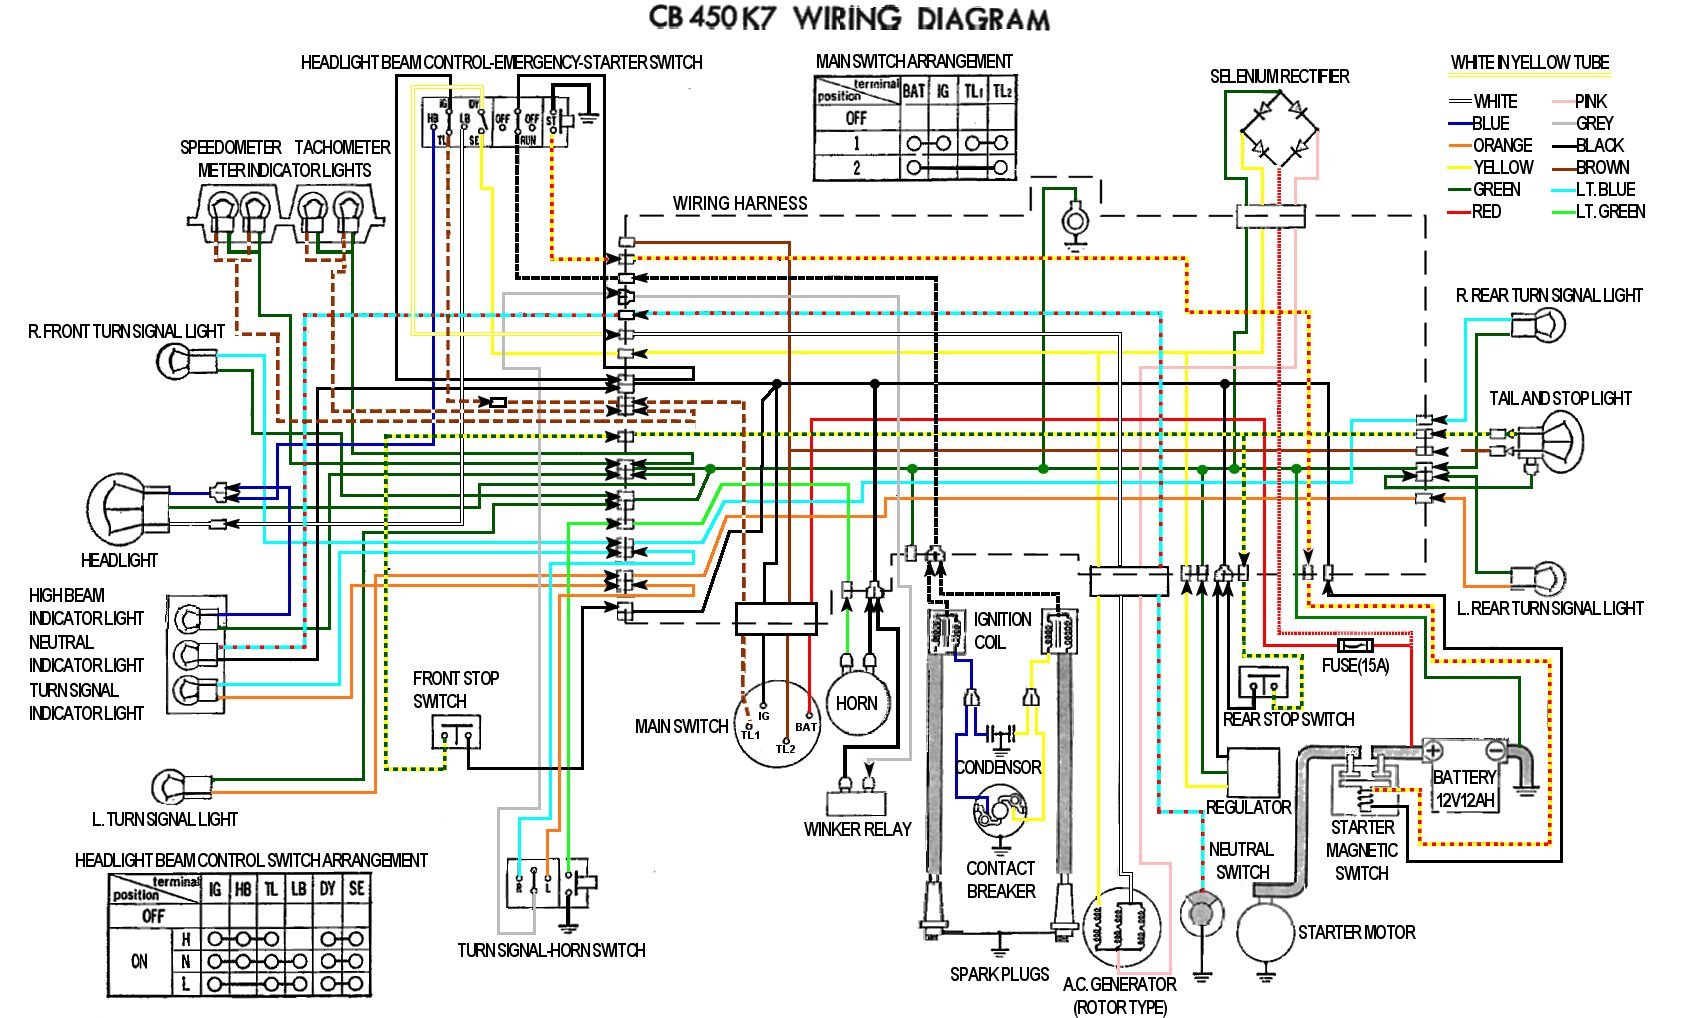 2008 Sportster Wiring Diagram Will Be A Thing 2000 Harley Davidson 883 Cb450 Color Now Corrected 1200 2007